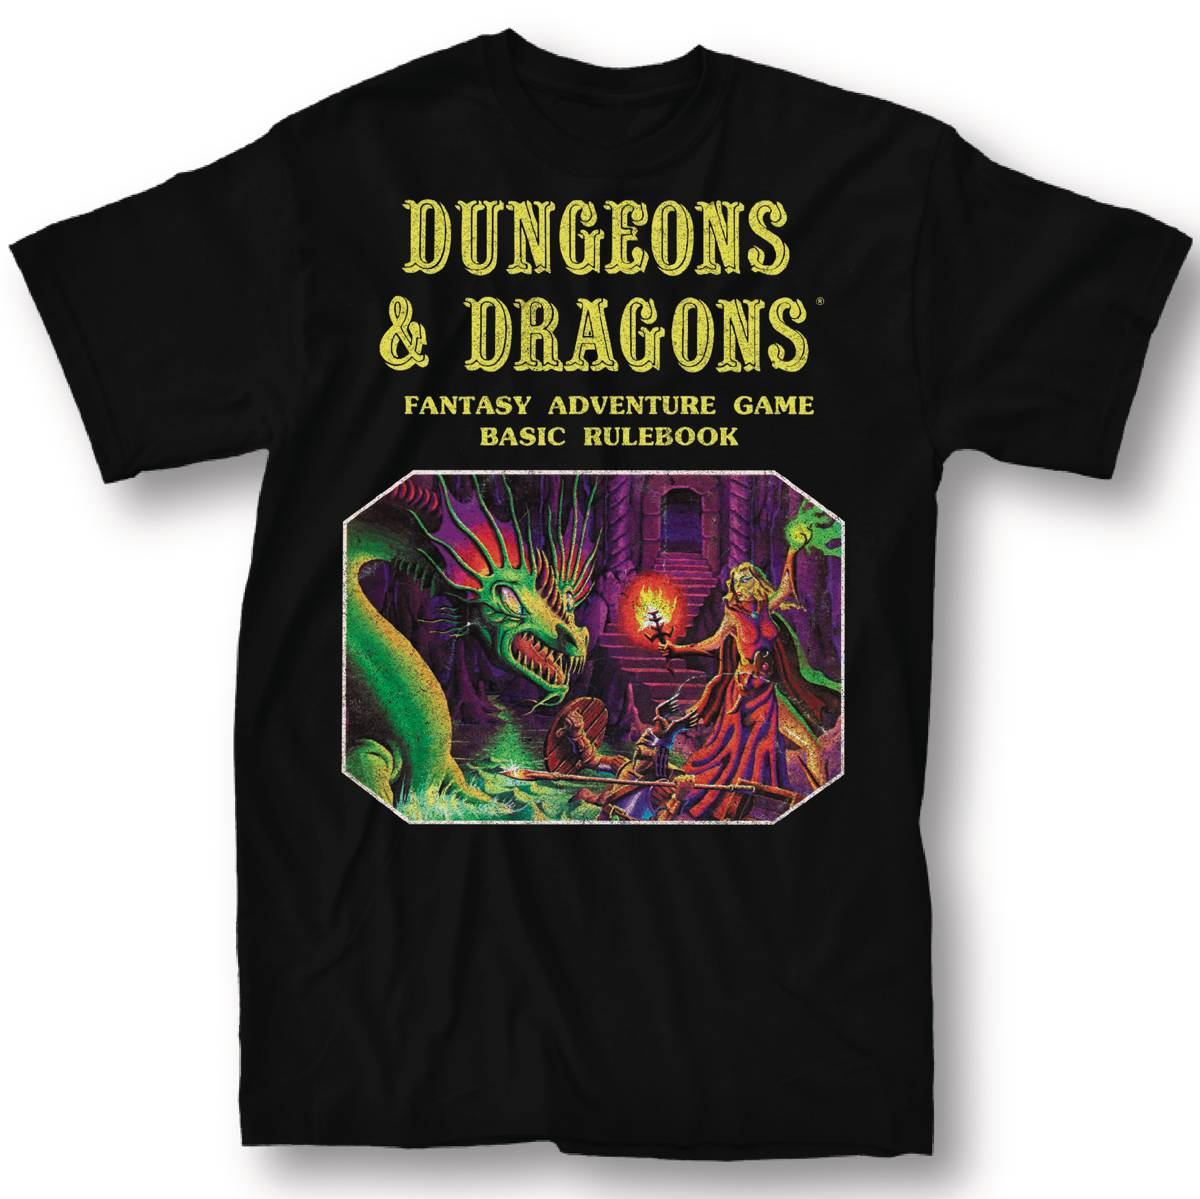 DUNGEONS & DRAGONS BASIC RULE BOOK BLK T S LG.jpg